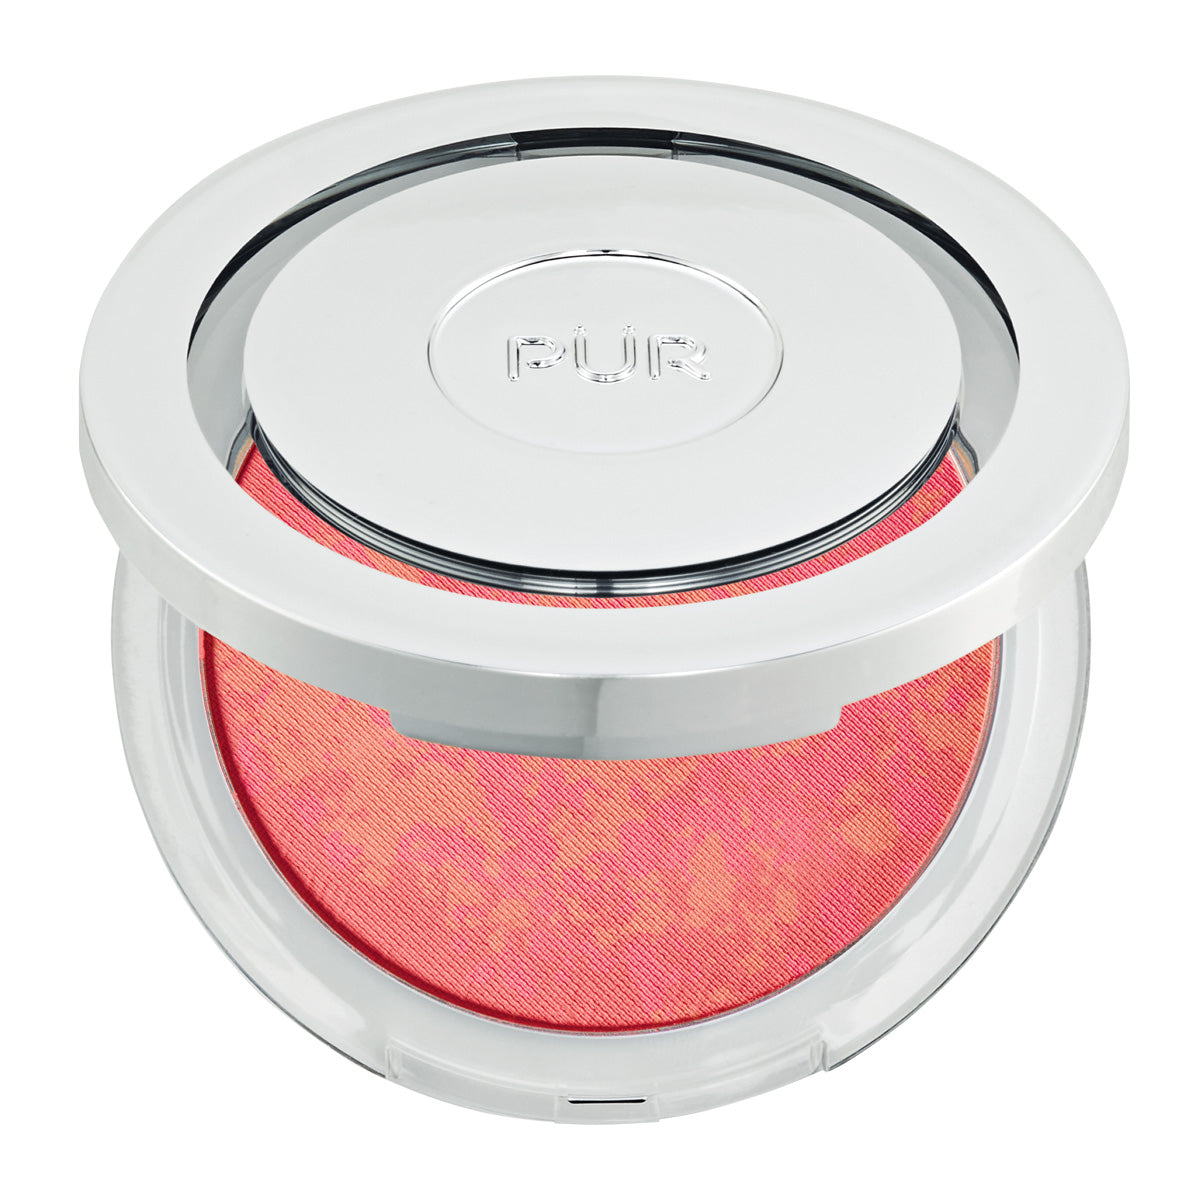 Skin Perfecting Powder Blushing Act